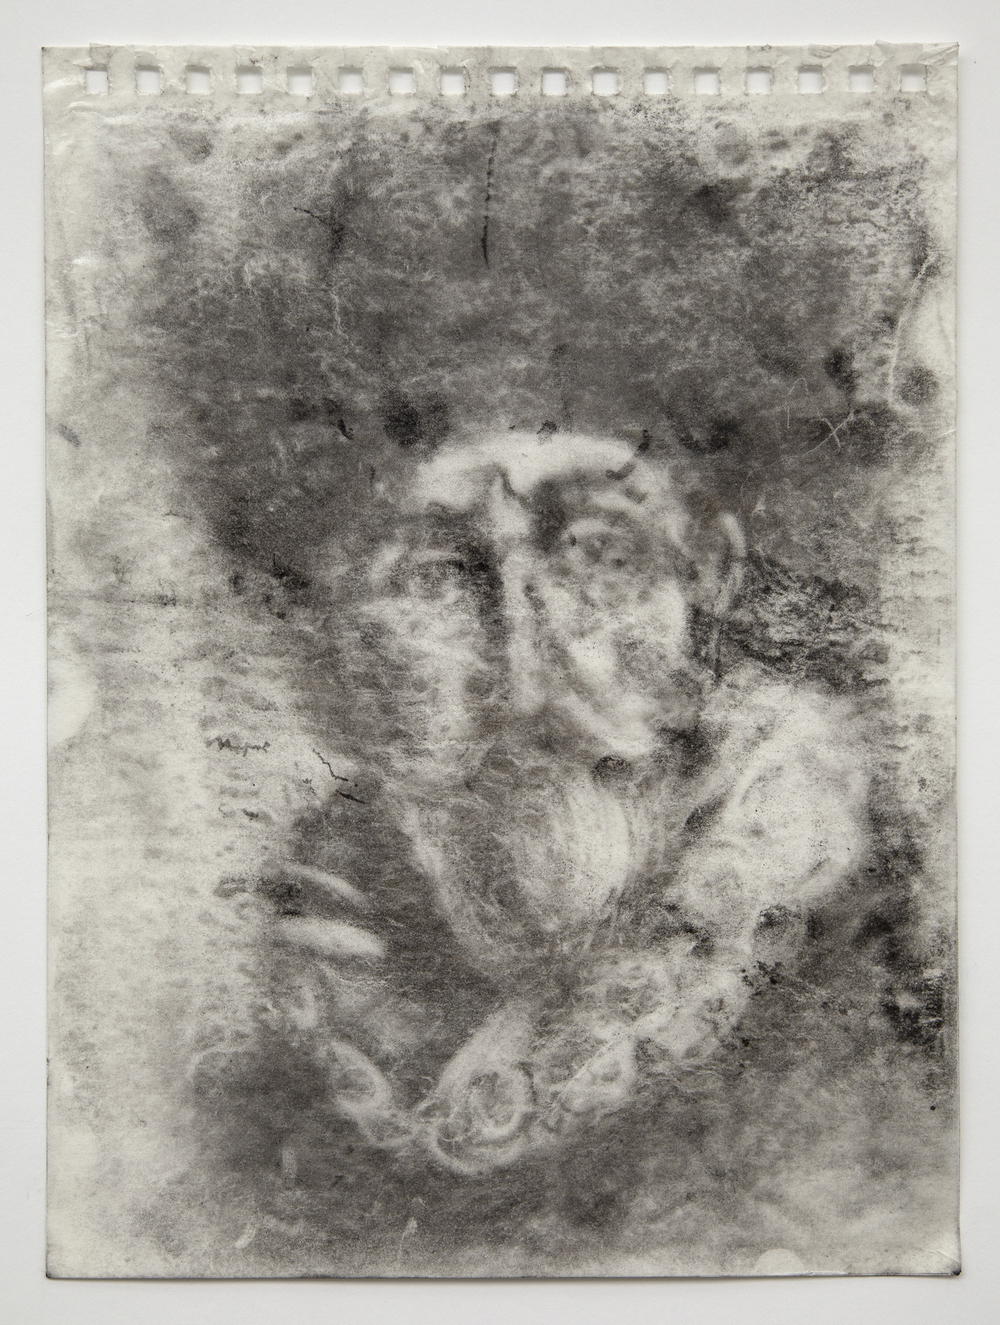 Interleaf Drawing (after Rembrandt), 2013